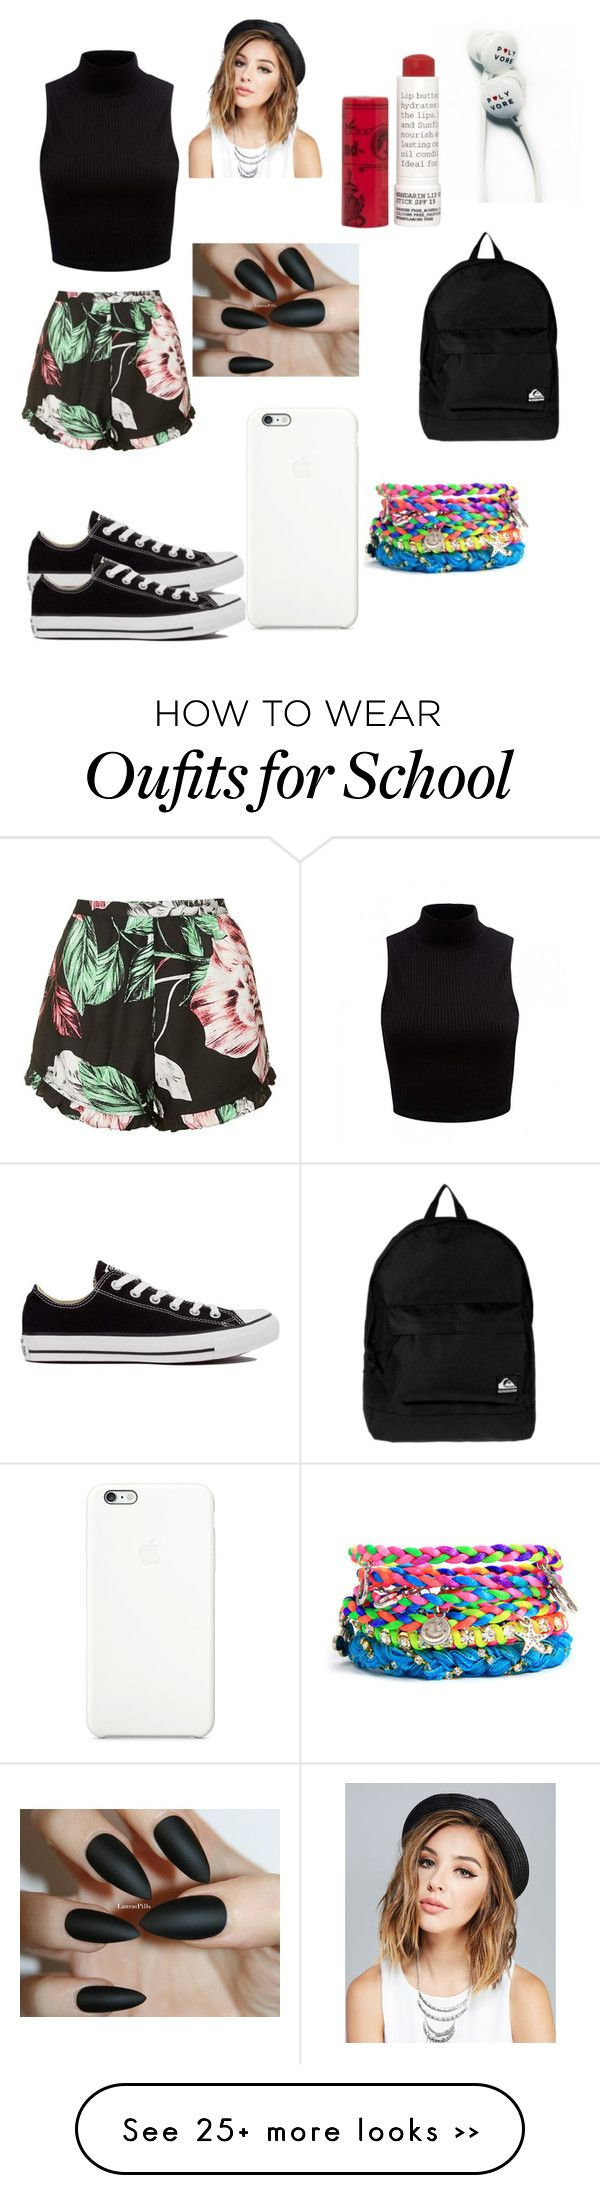 """when your first day of school outfit on fleek"" by lmfao5678 on Polyvore"